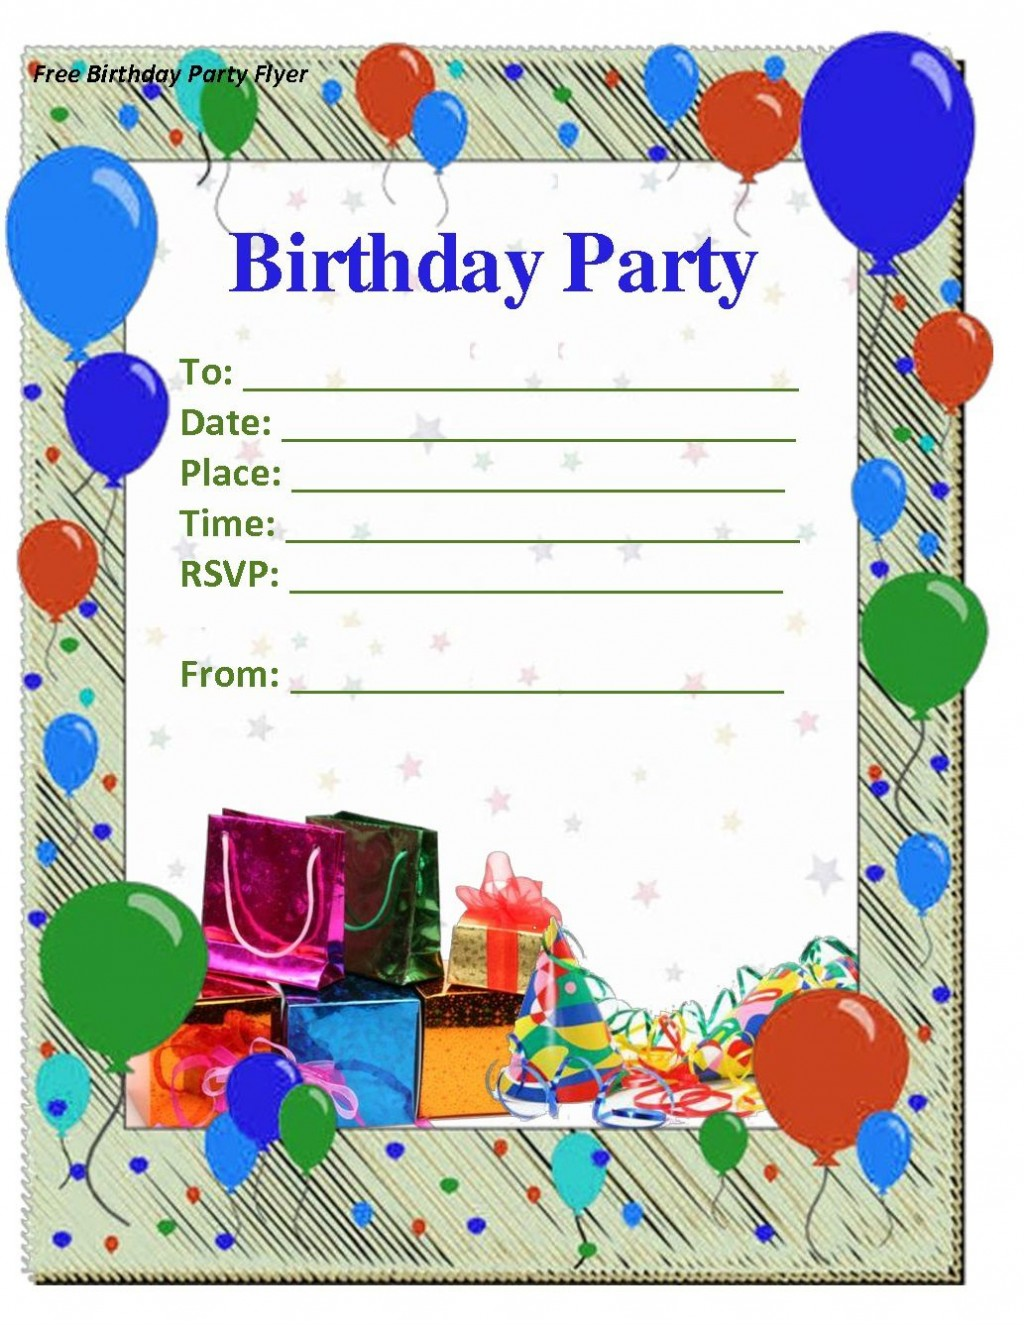 009 Impressive Birthday Party Invitation Template Word Free High Definition  Download InviteLarge